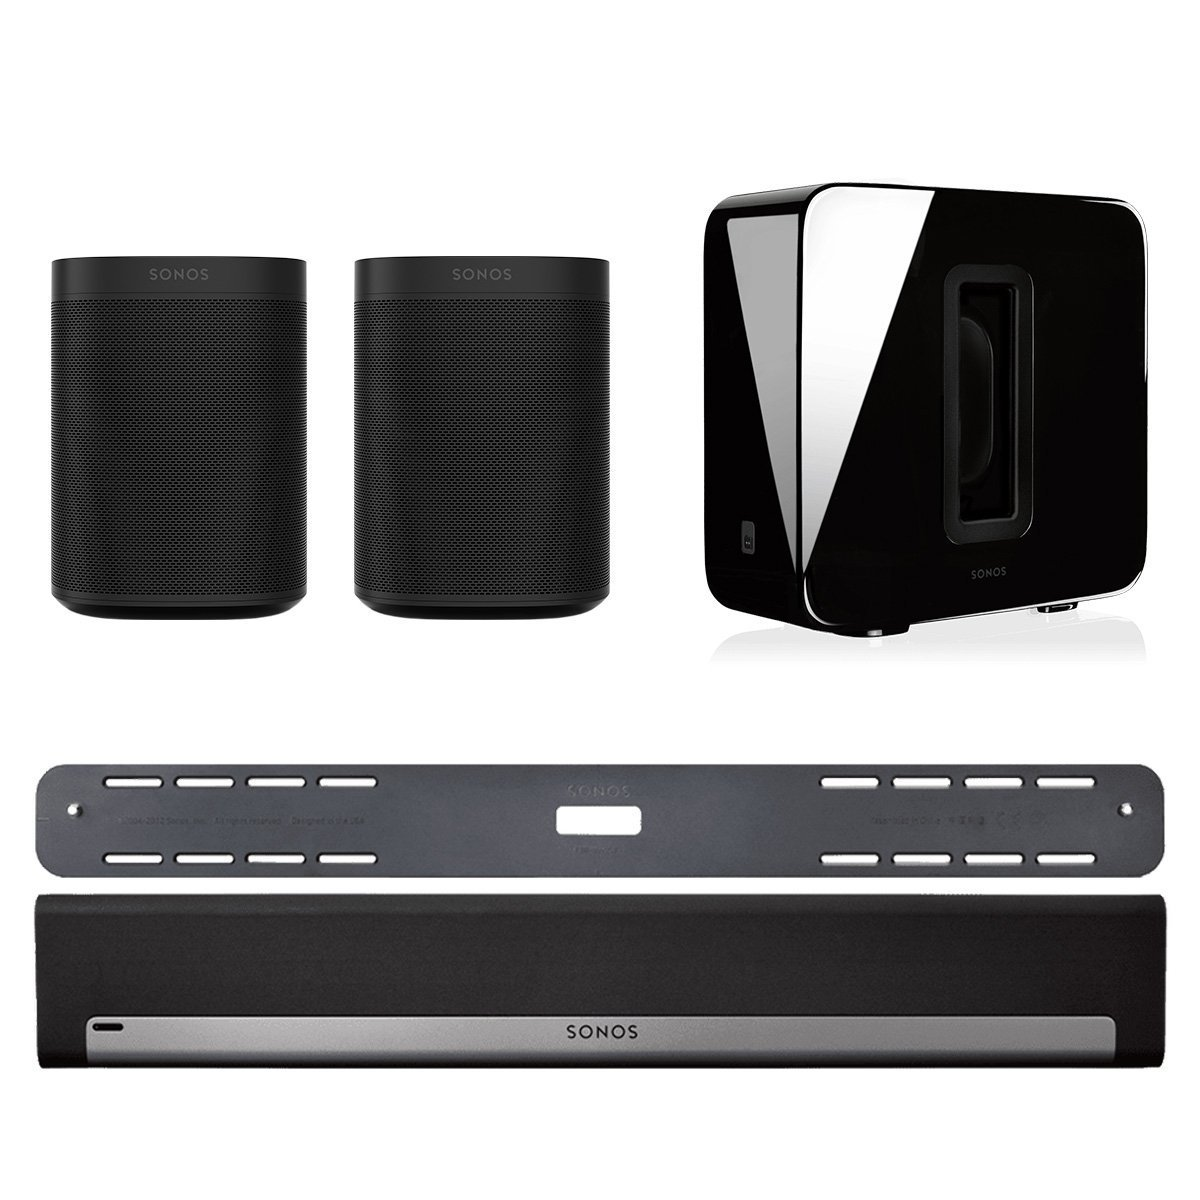 Sonos 5.1 Home Theater System with Sonos ONE (Pair), PLAYBAR with Wall Mount Kit, and SUB (Black)